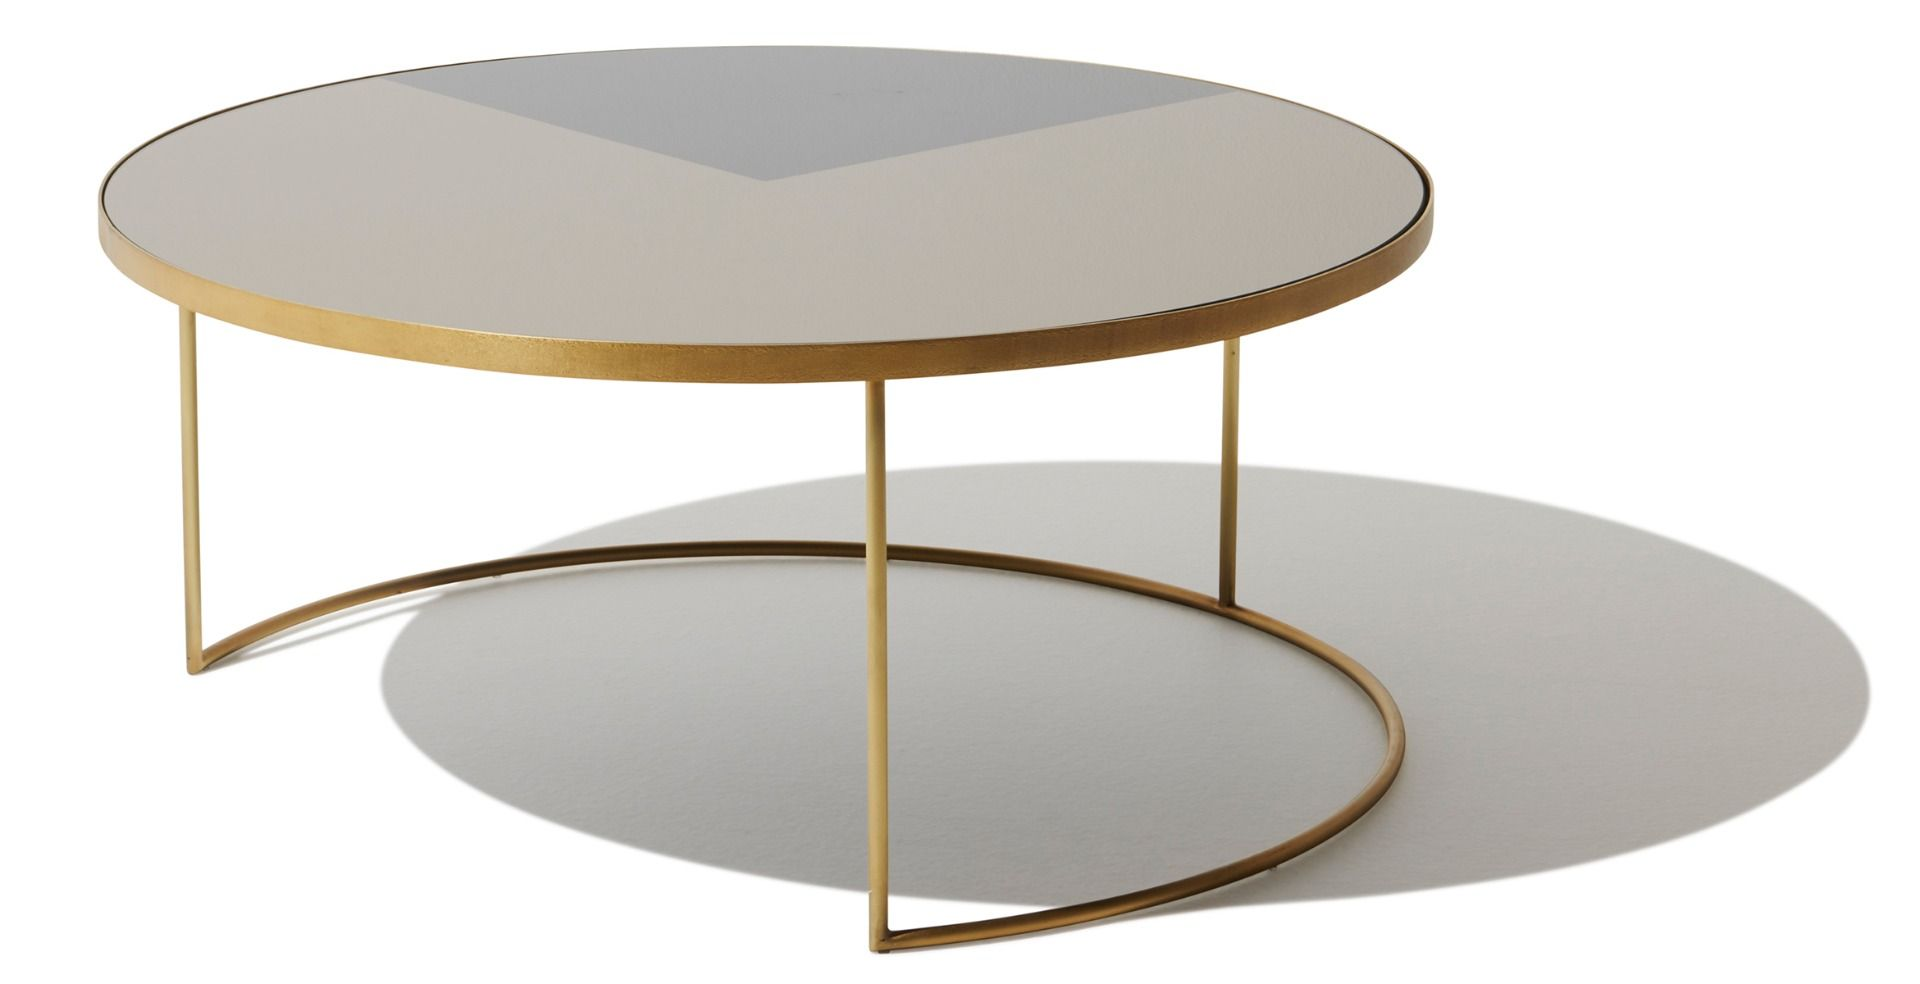 Geometric Bronze Coffee Table Round Table Round Coffee Table